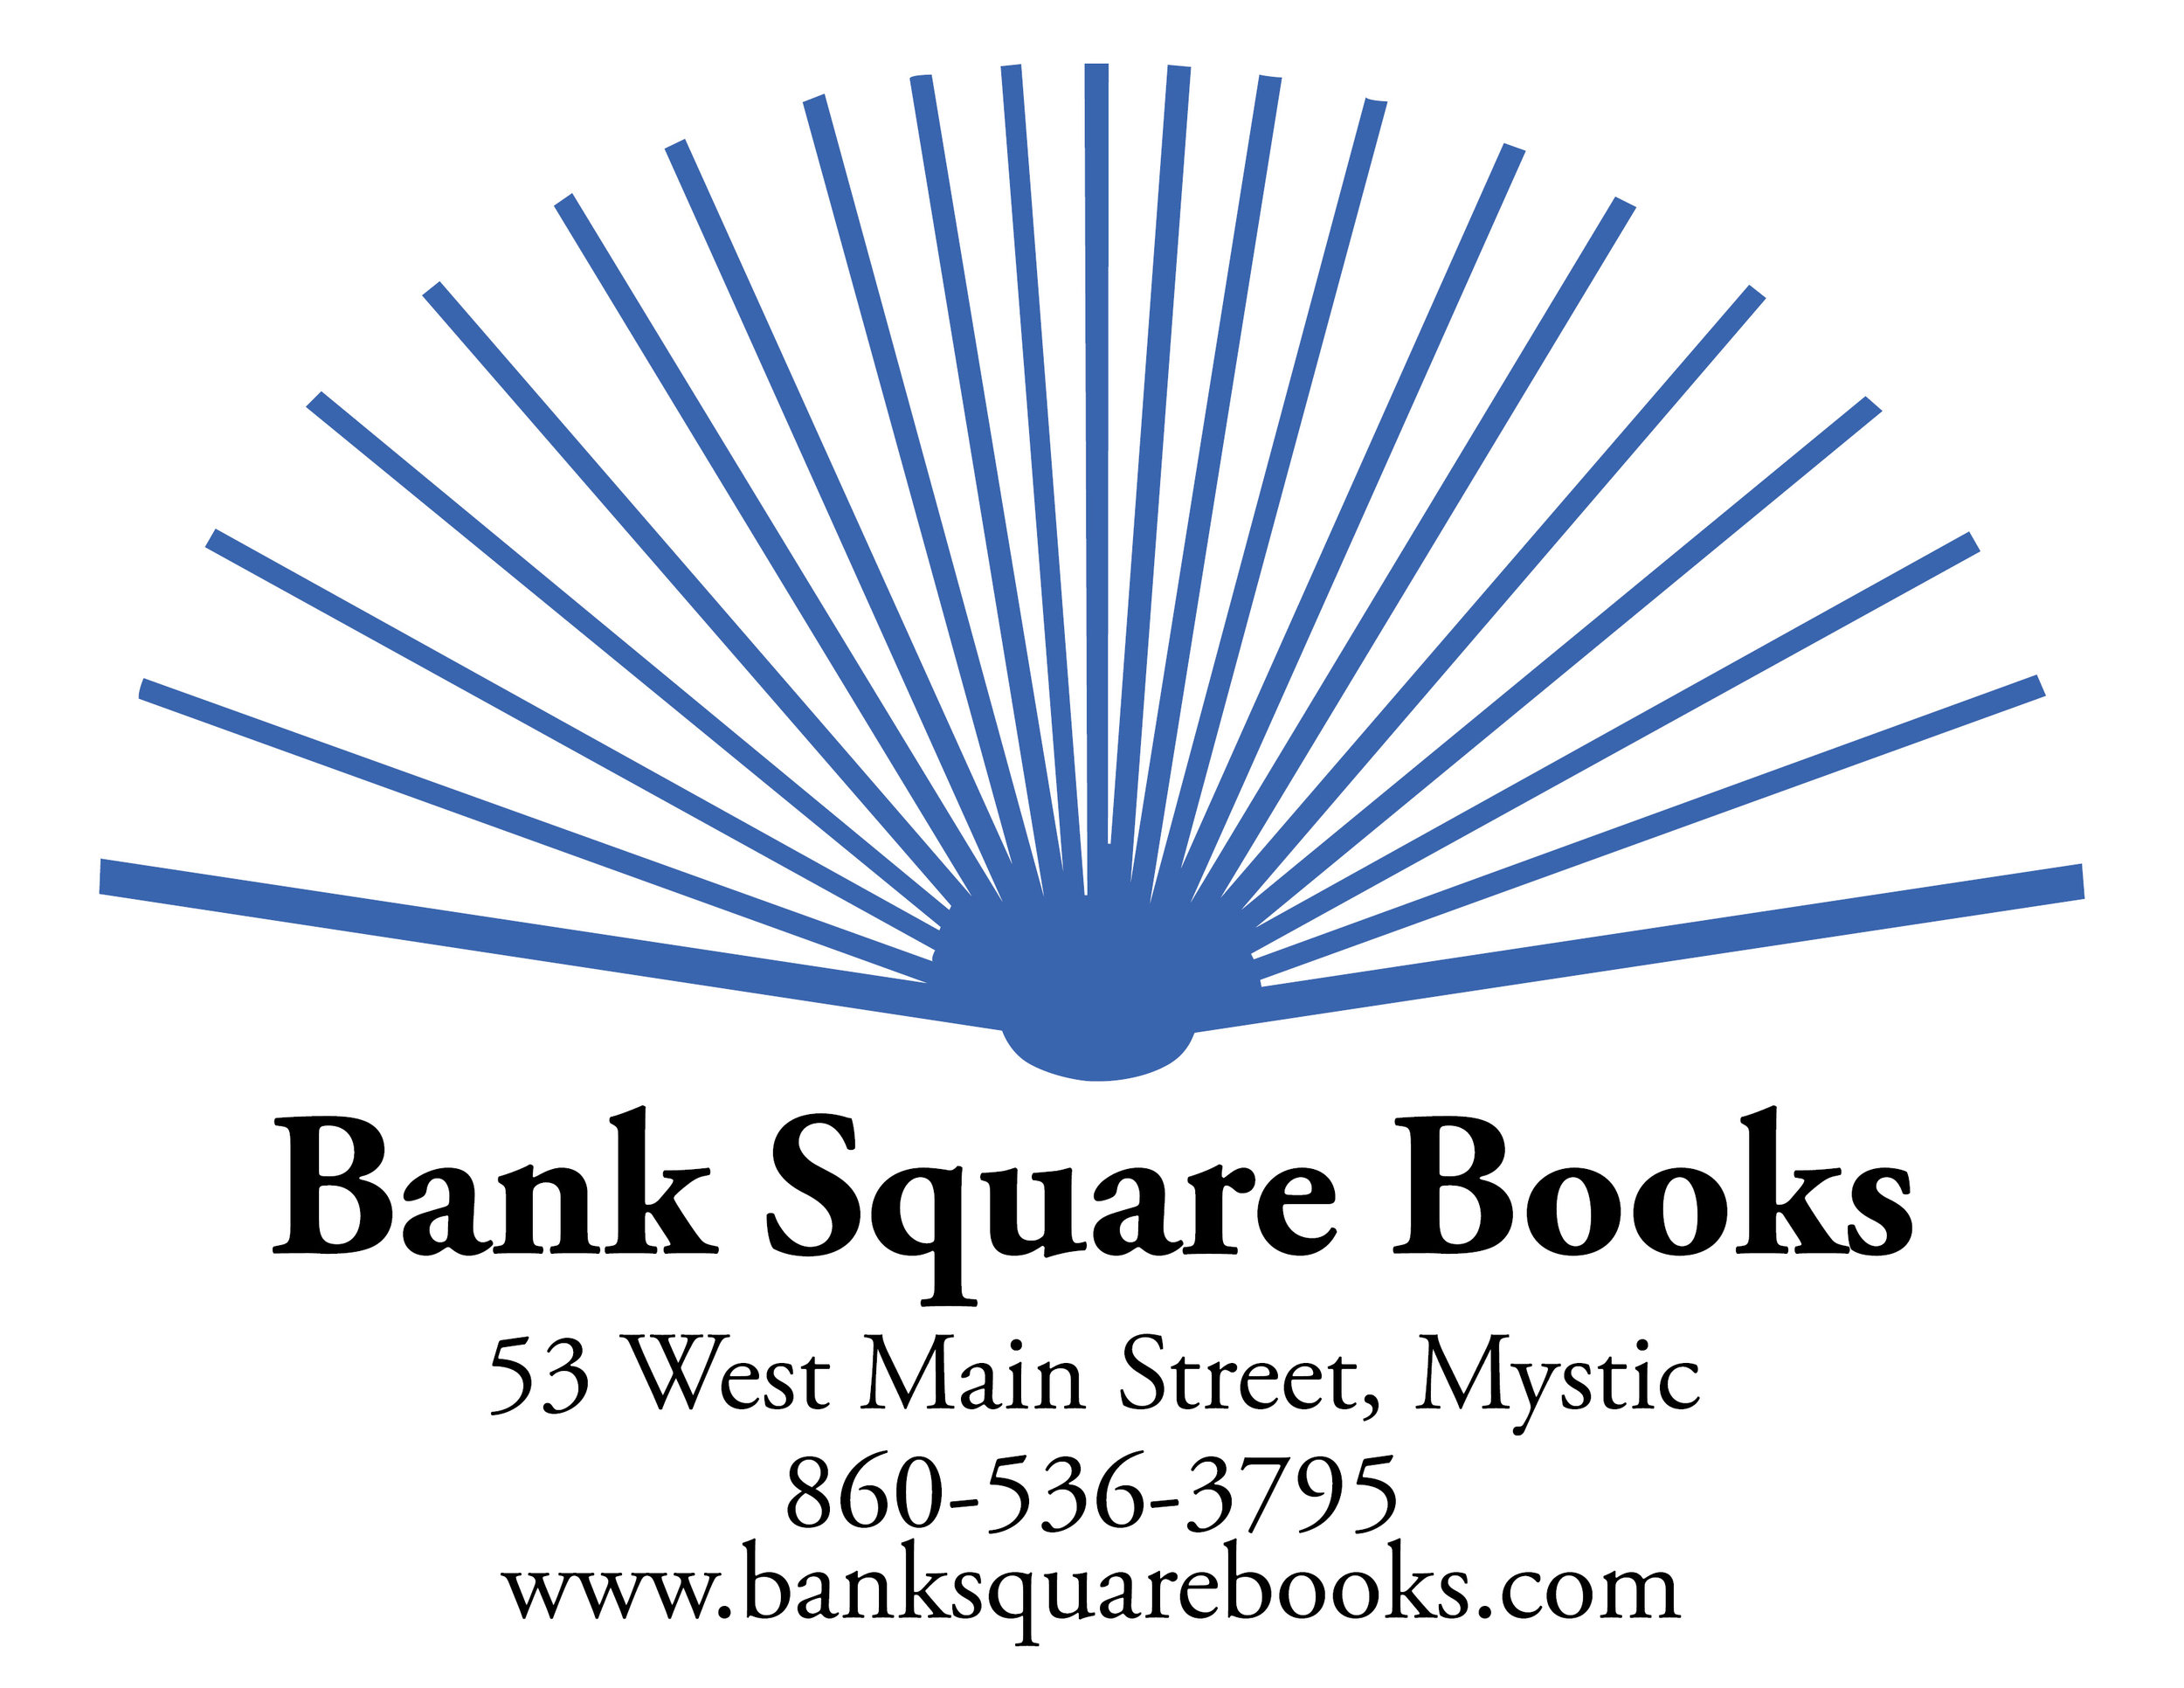 Bank-Square-Books-Blue-Logo.jpg